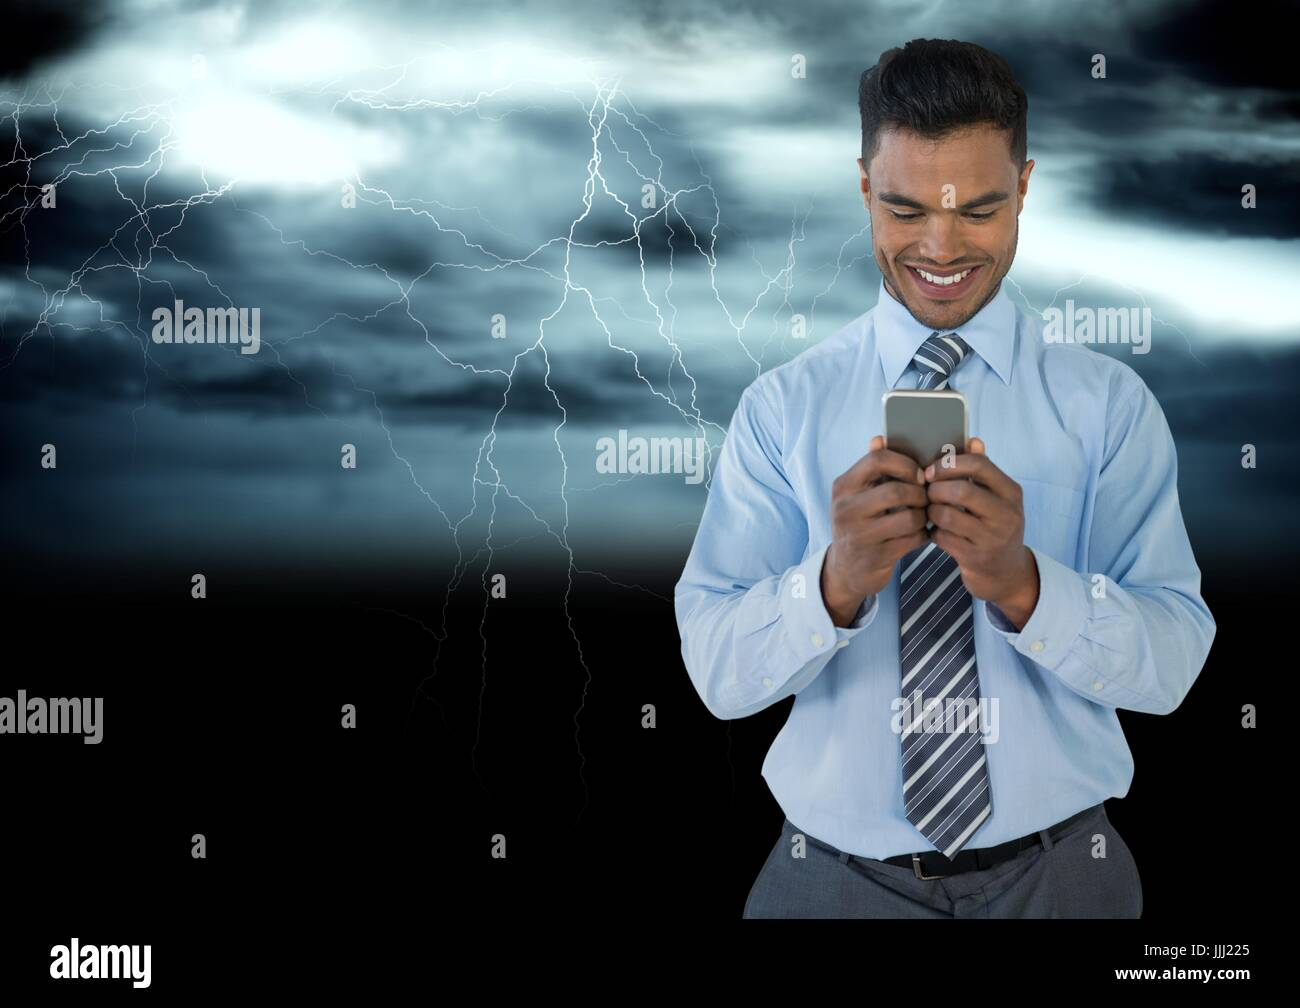 Smiling man texting in darkness with lightenings - Stock Image